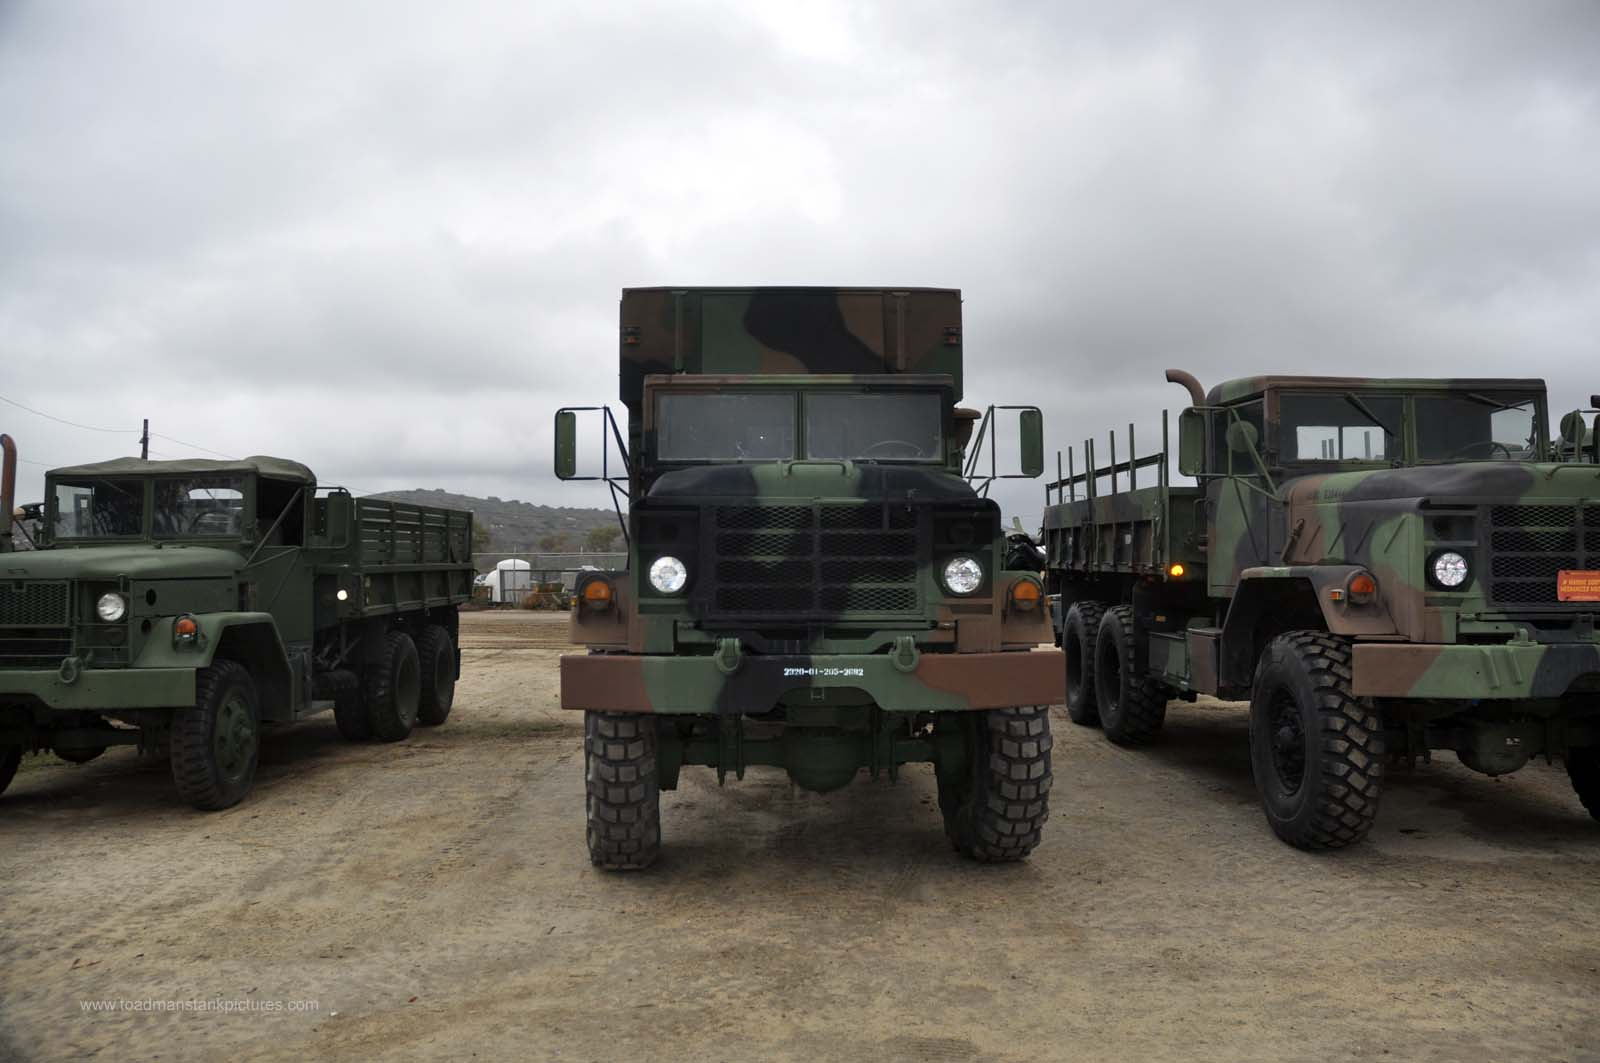 TOADMAN'S TANK PICTURES 6x6 5 TON TRUCK M934A1 WITH M32A2 SHELTER